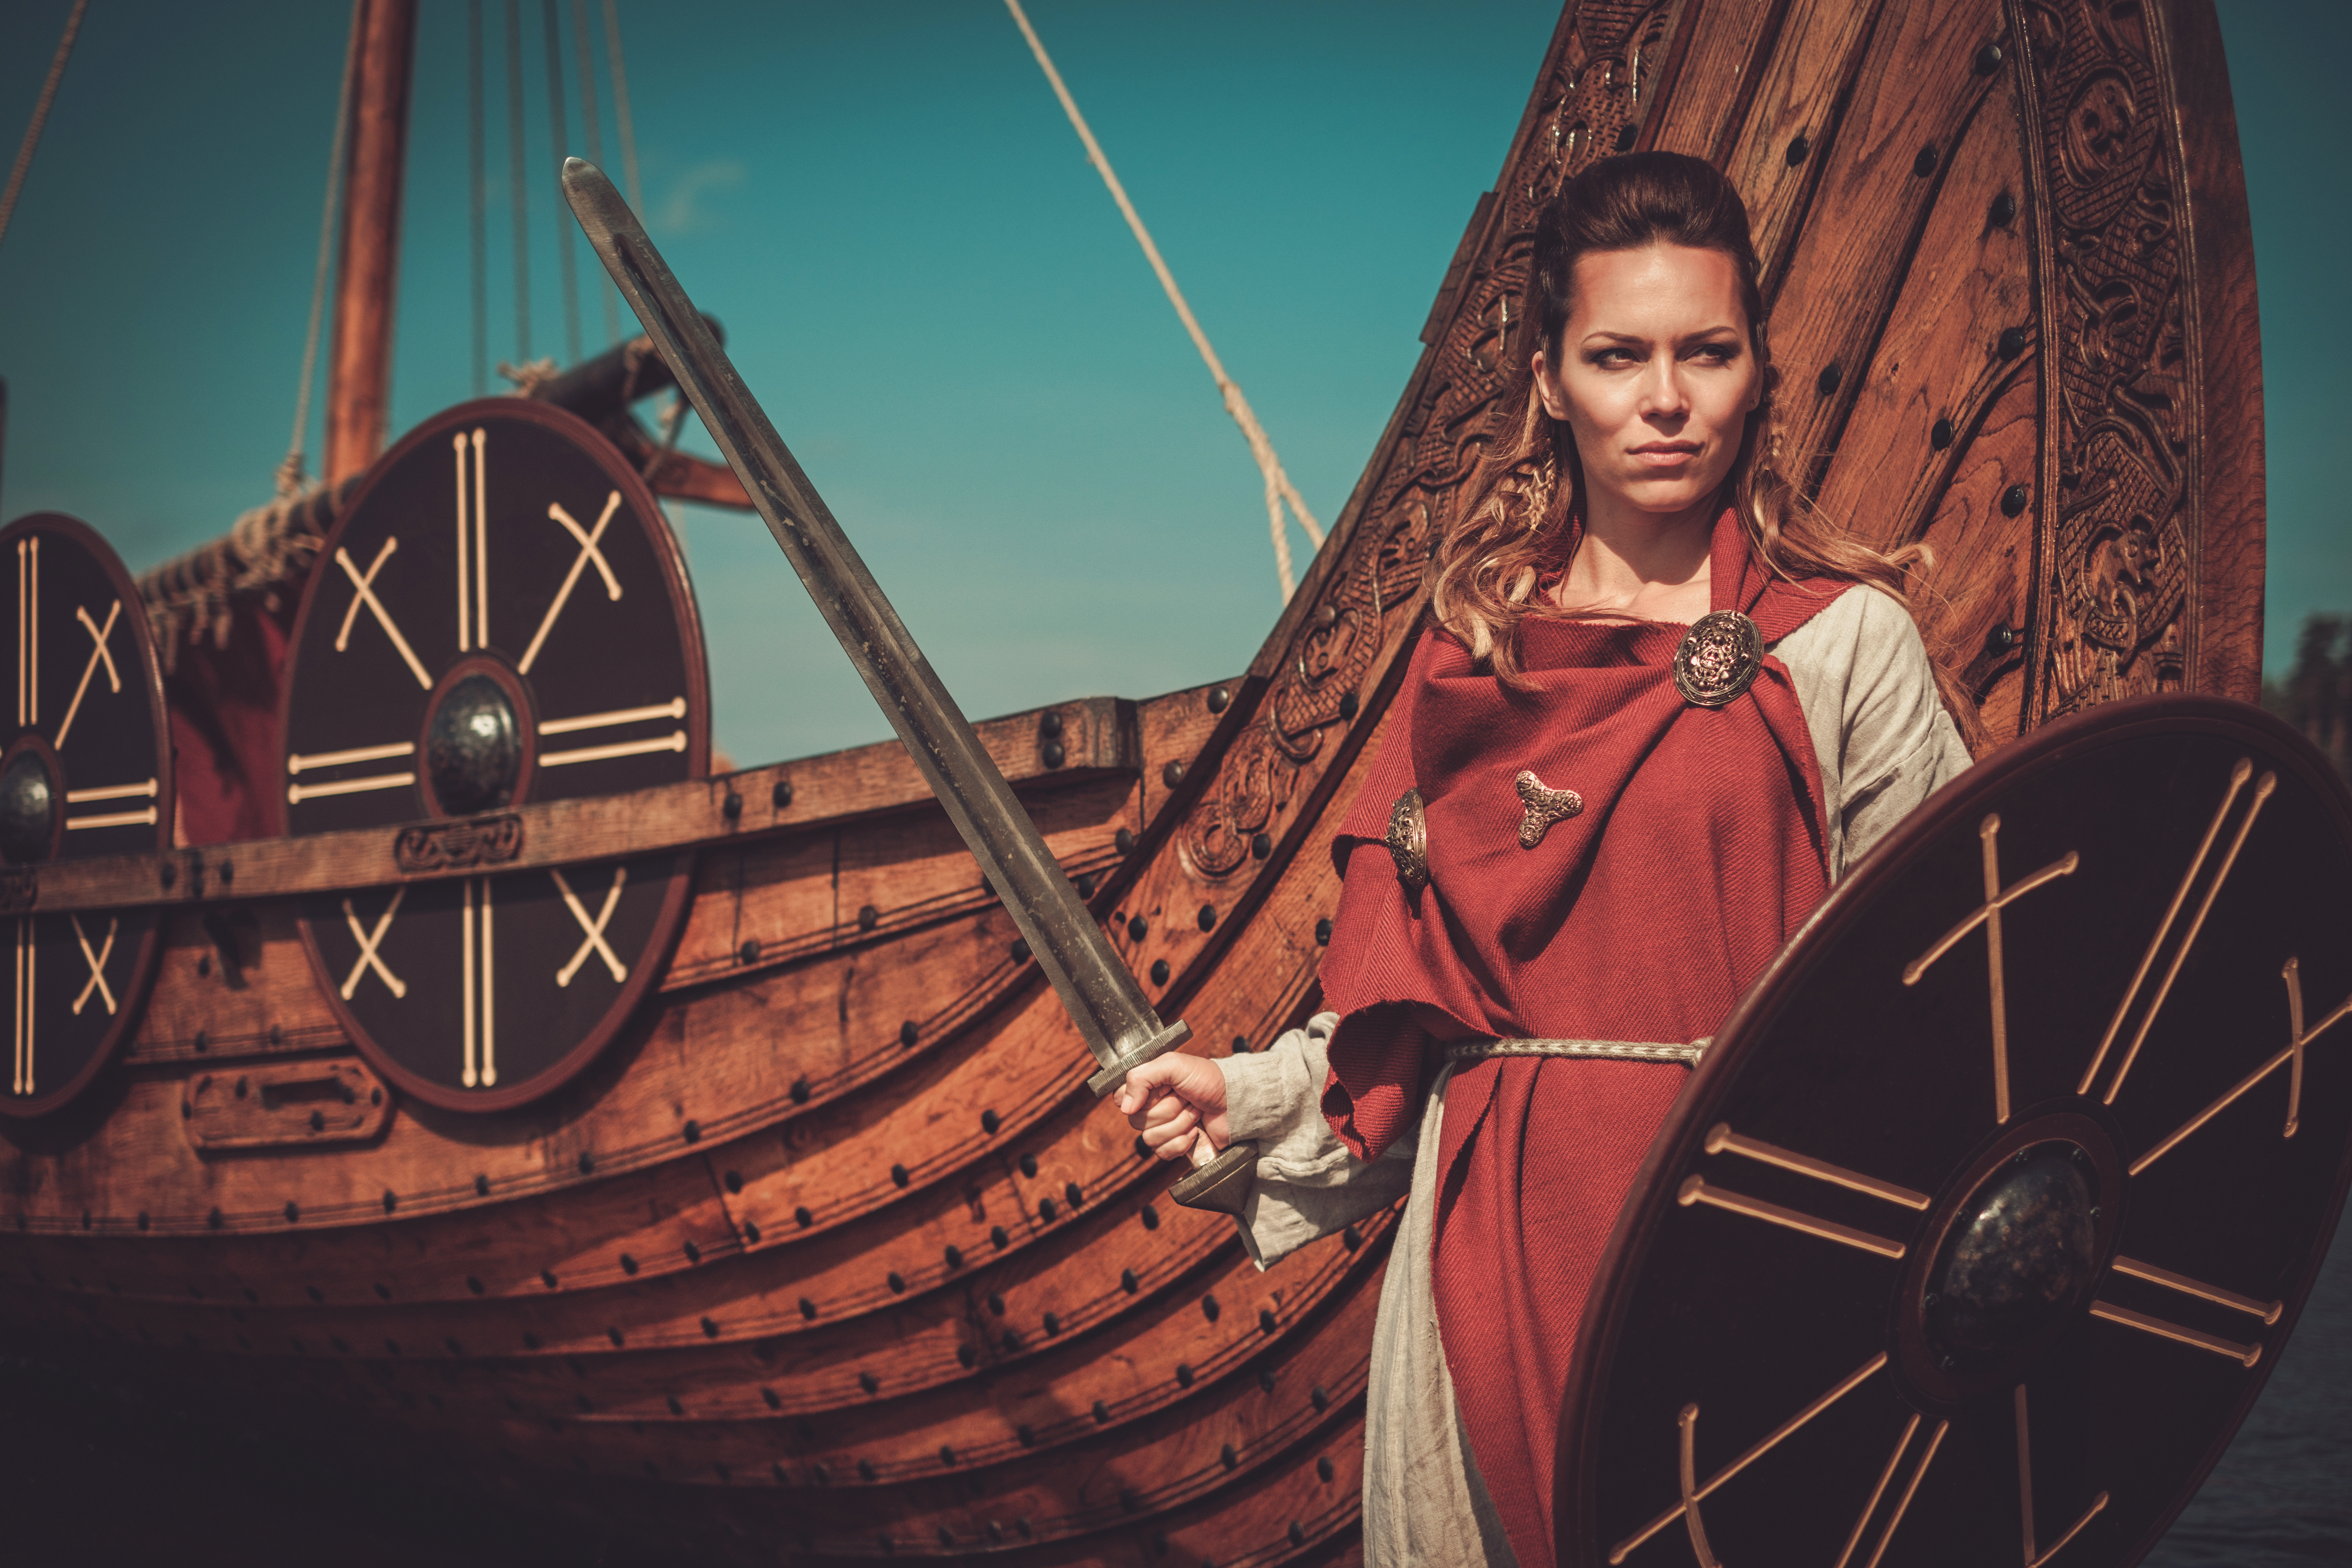 Viking woman in traditional clothes near drakkar.